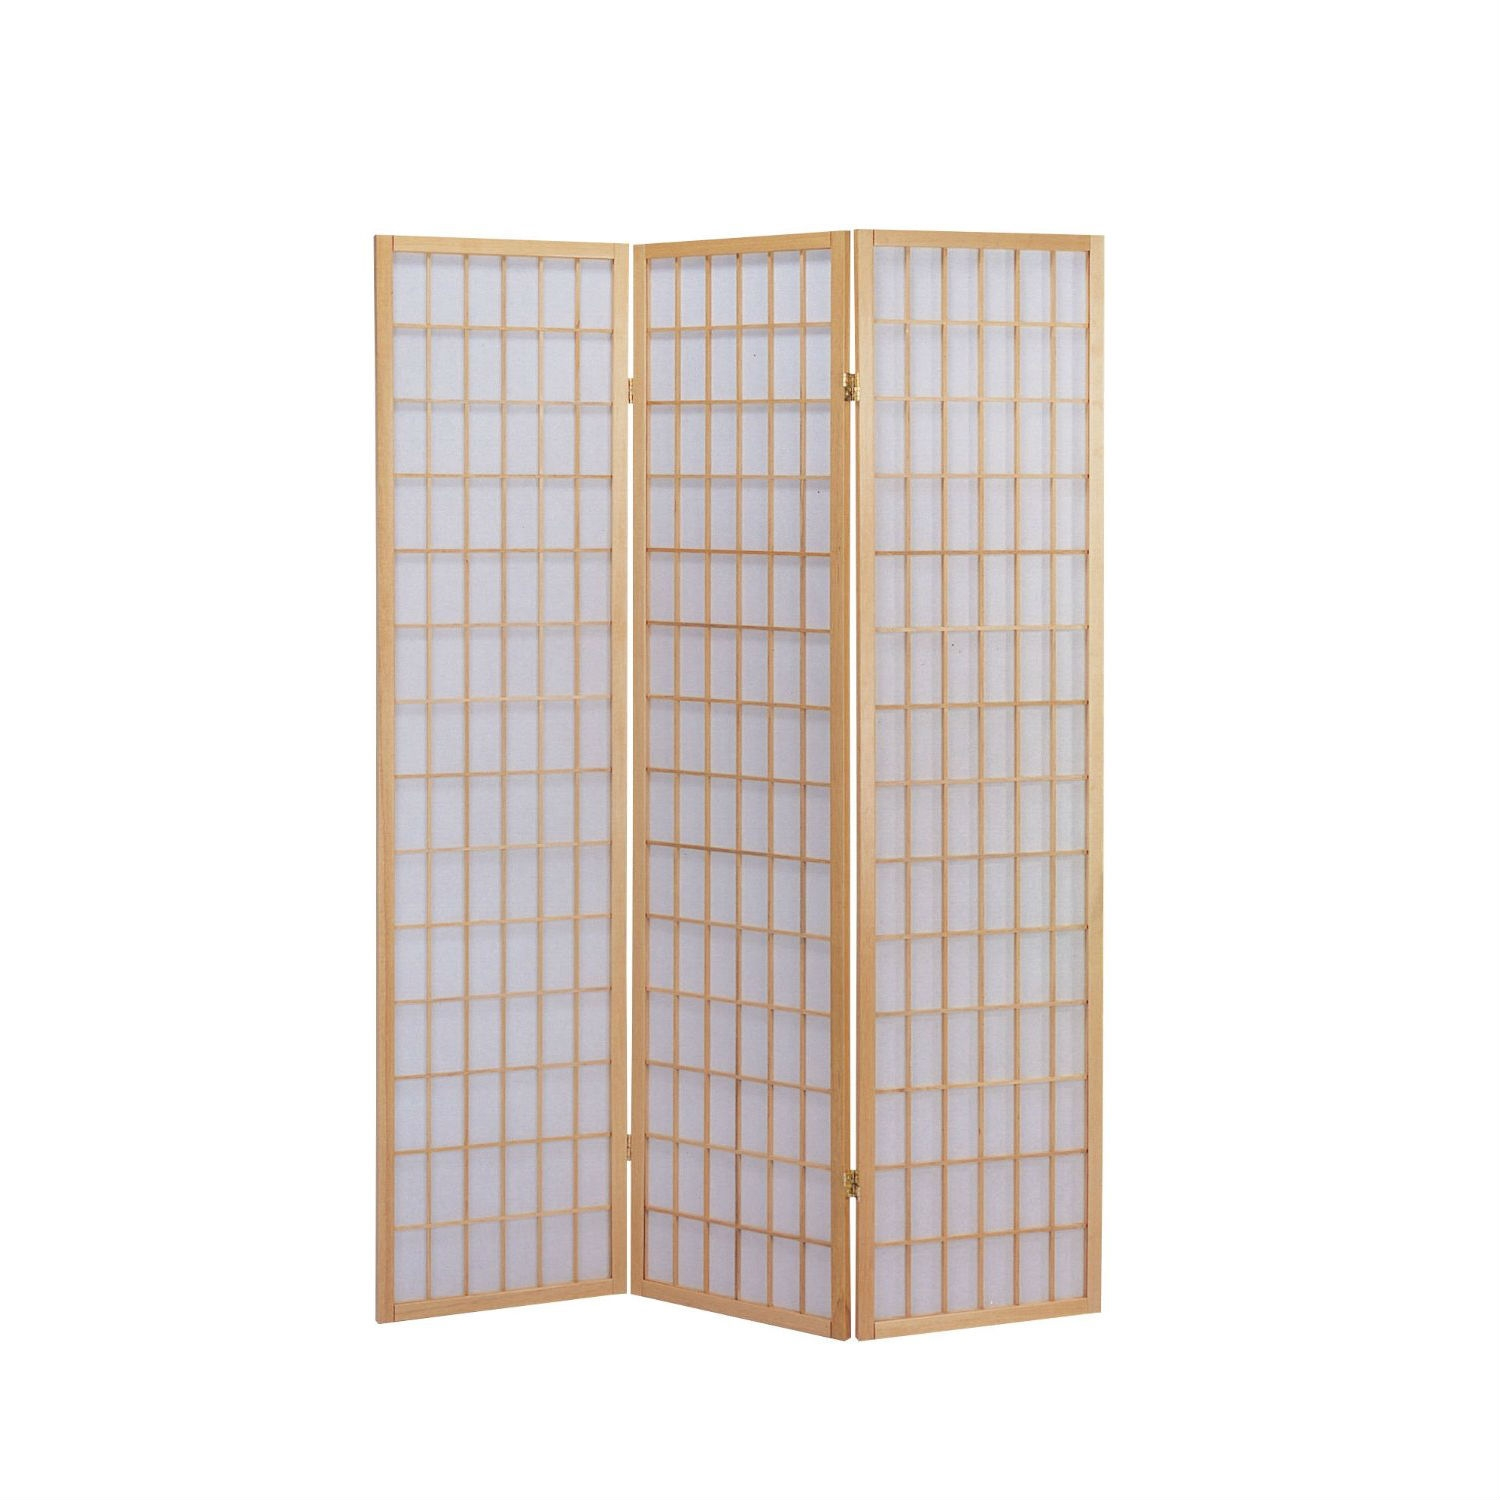 3 Panel Wooden Room Divider Japanese Shoji Screen in Natural